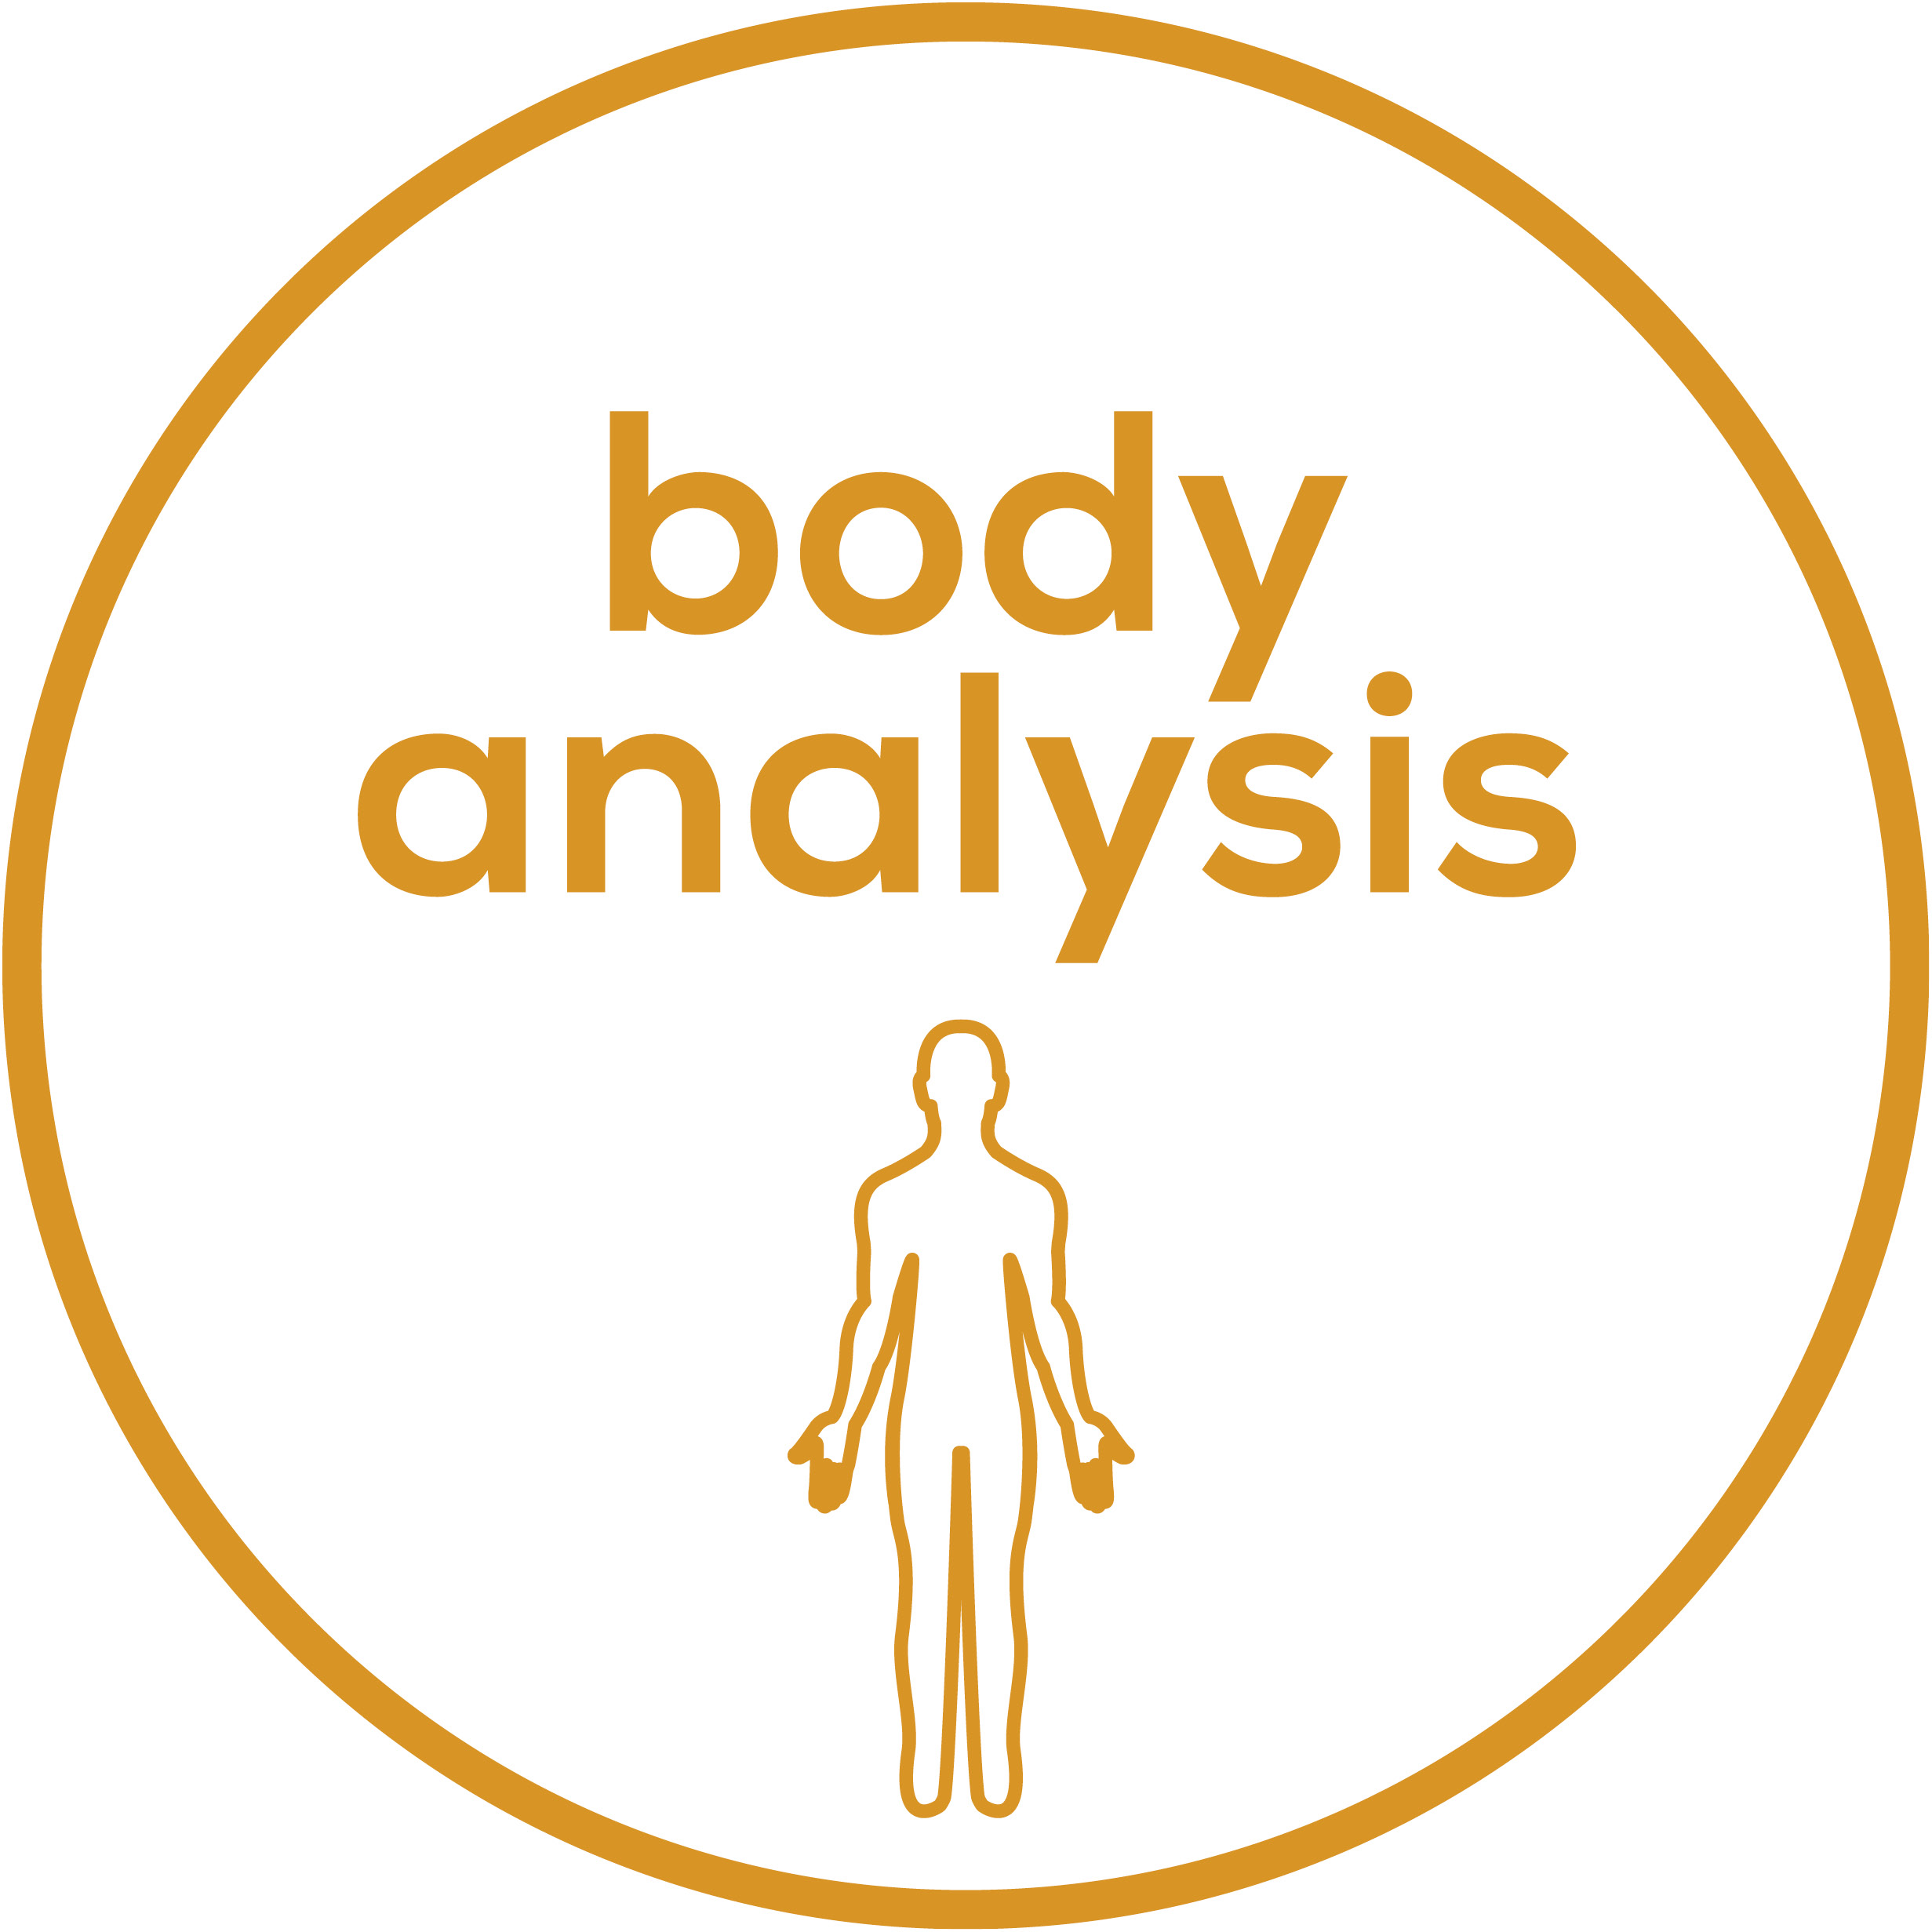 Body analysis Weight, body fat, body water, muscle percentage, bone mass; calorie display